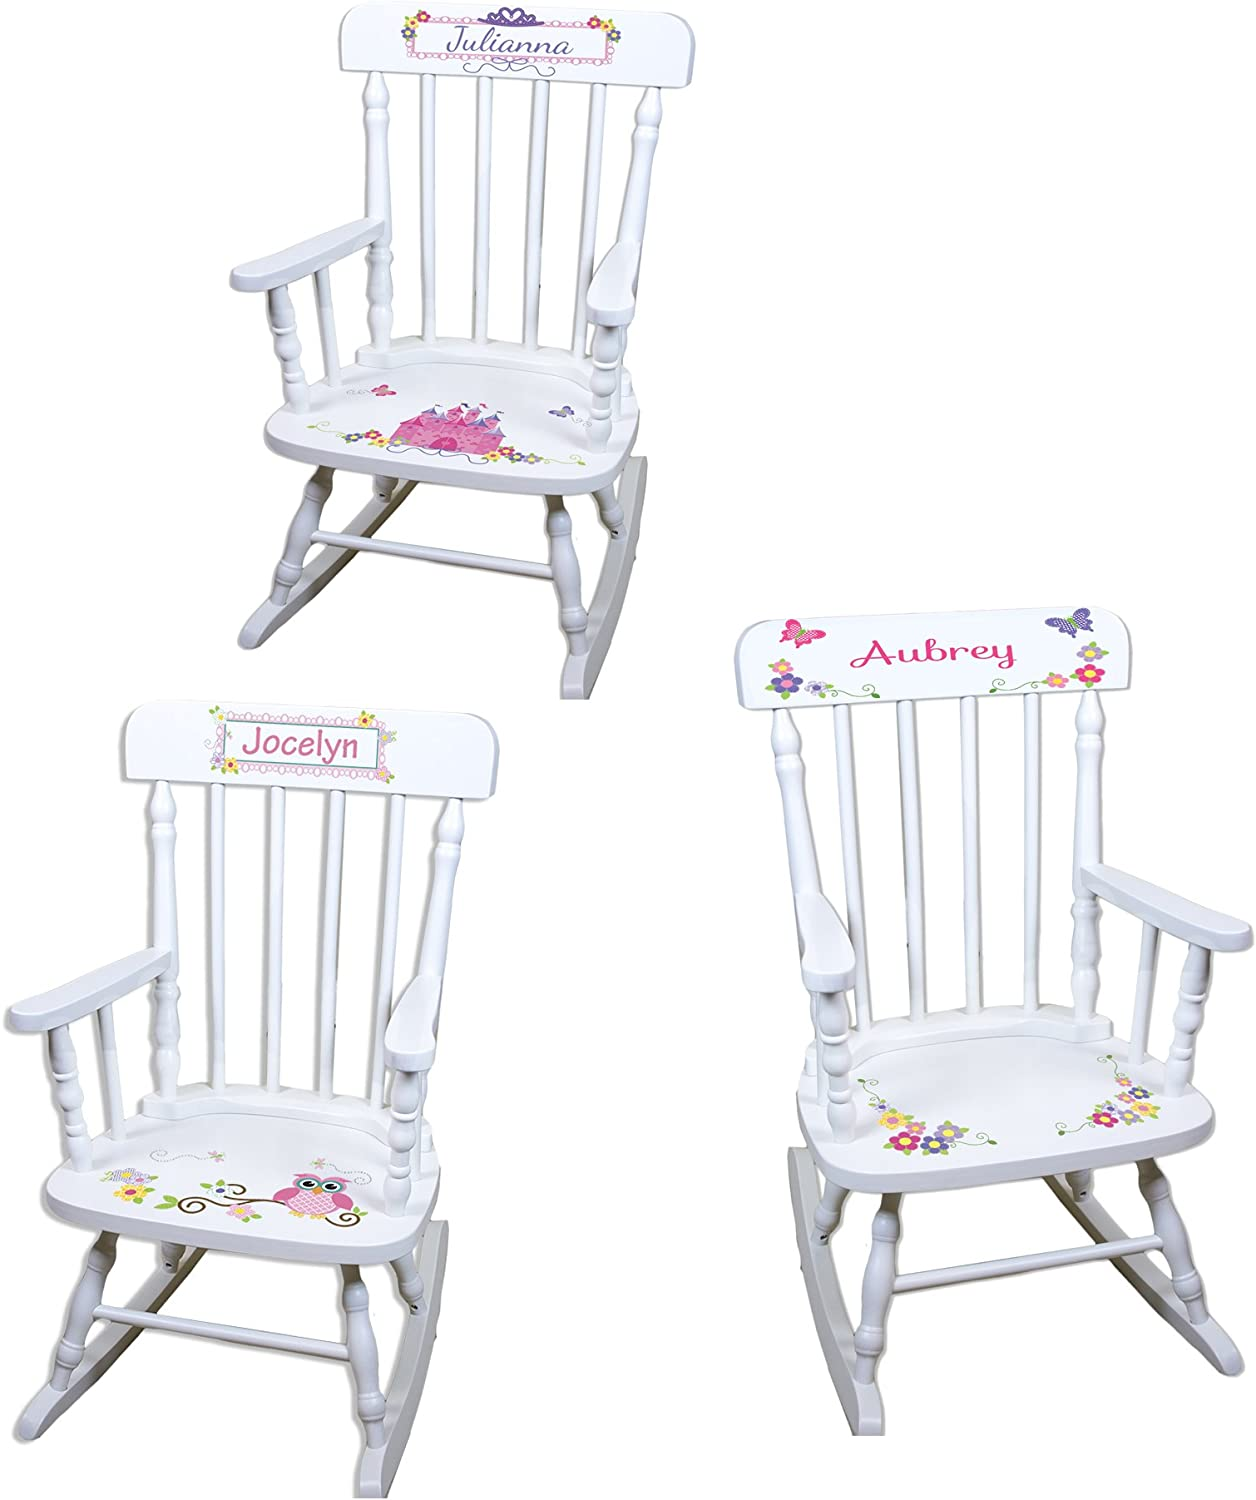 We OFFer at cheap prices Minneapolis Mall Personalized Girls Rocking Chair-White